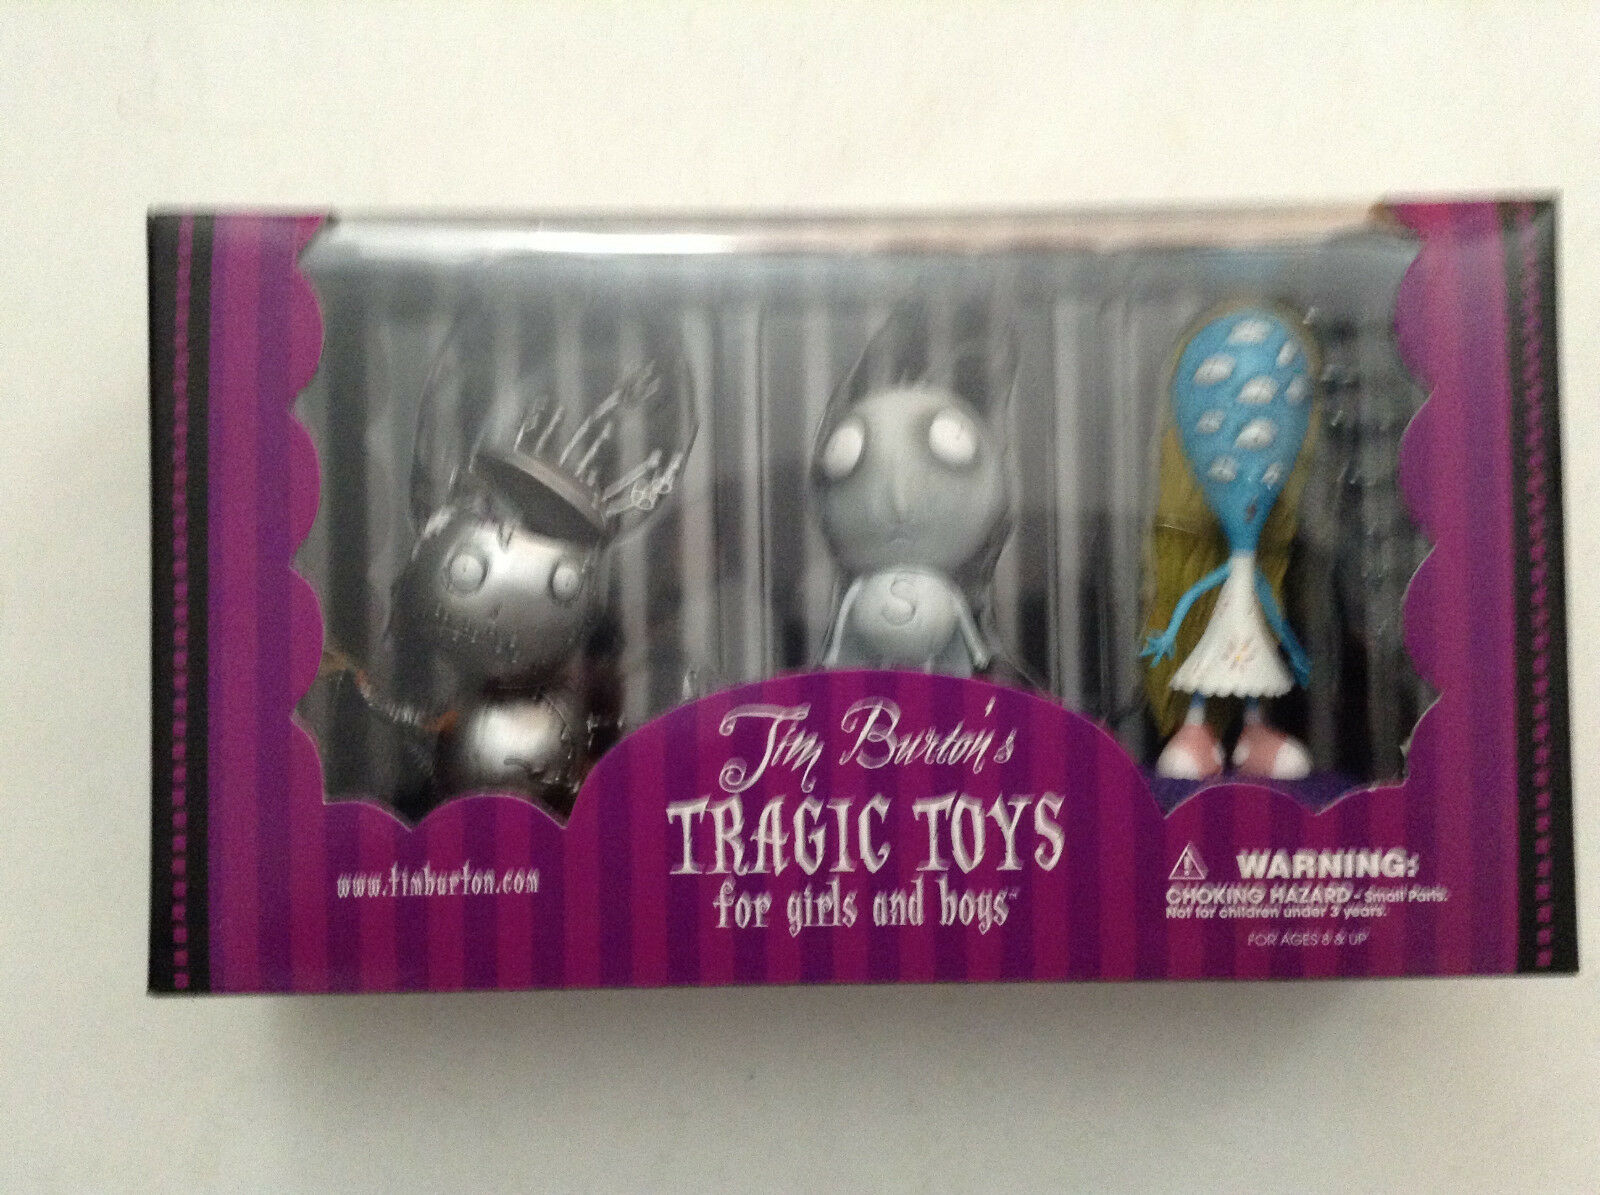 TIM BURTON'S TRAGIC TOYS 3-PACK PVC FIGURINE BOX SET ROBOT BOY STAIN BOY GIRL 12